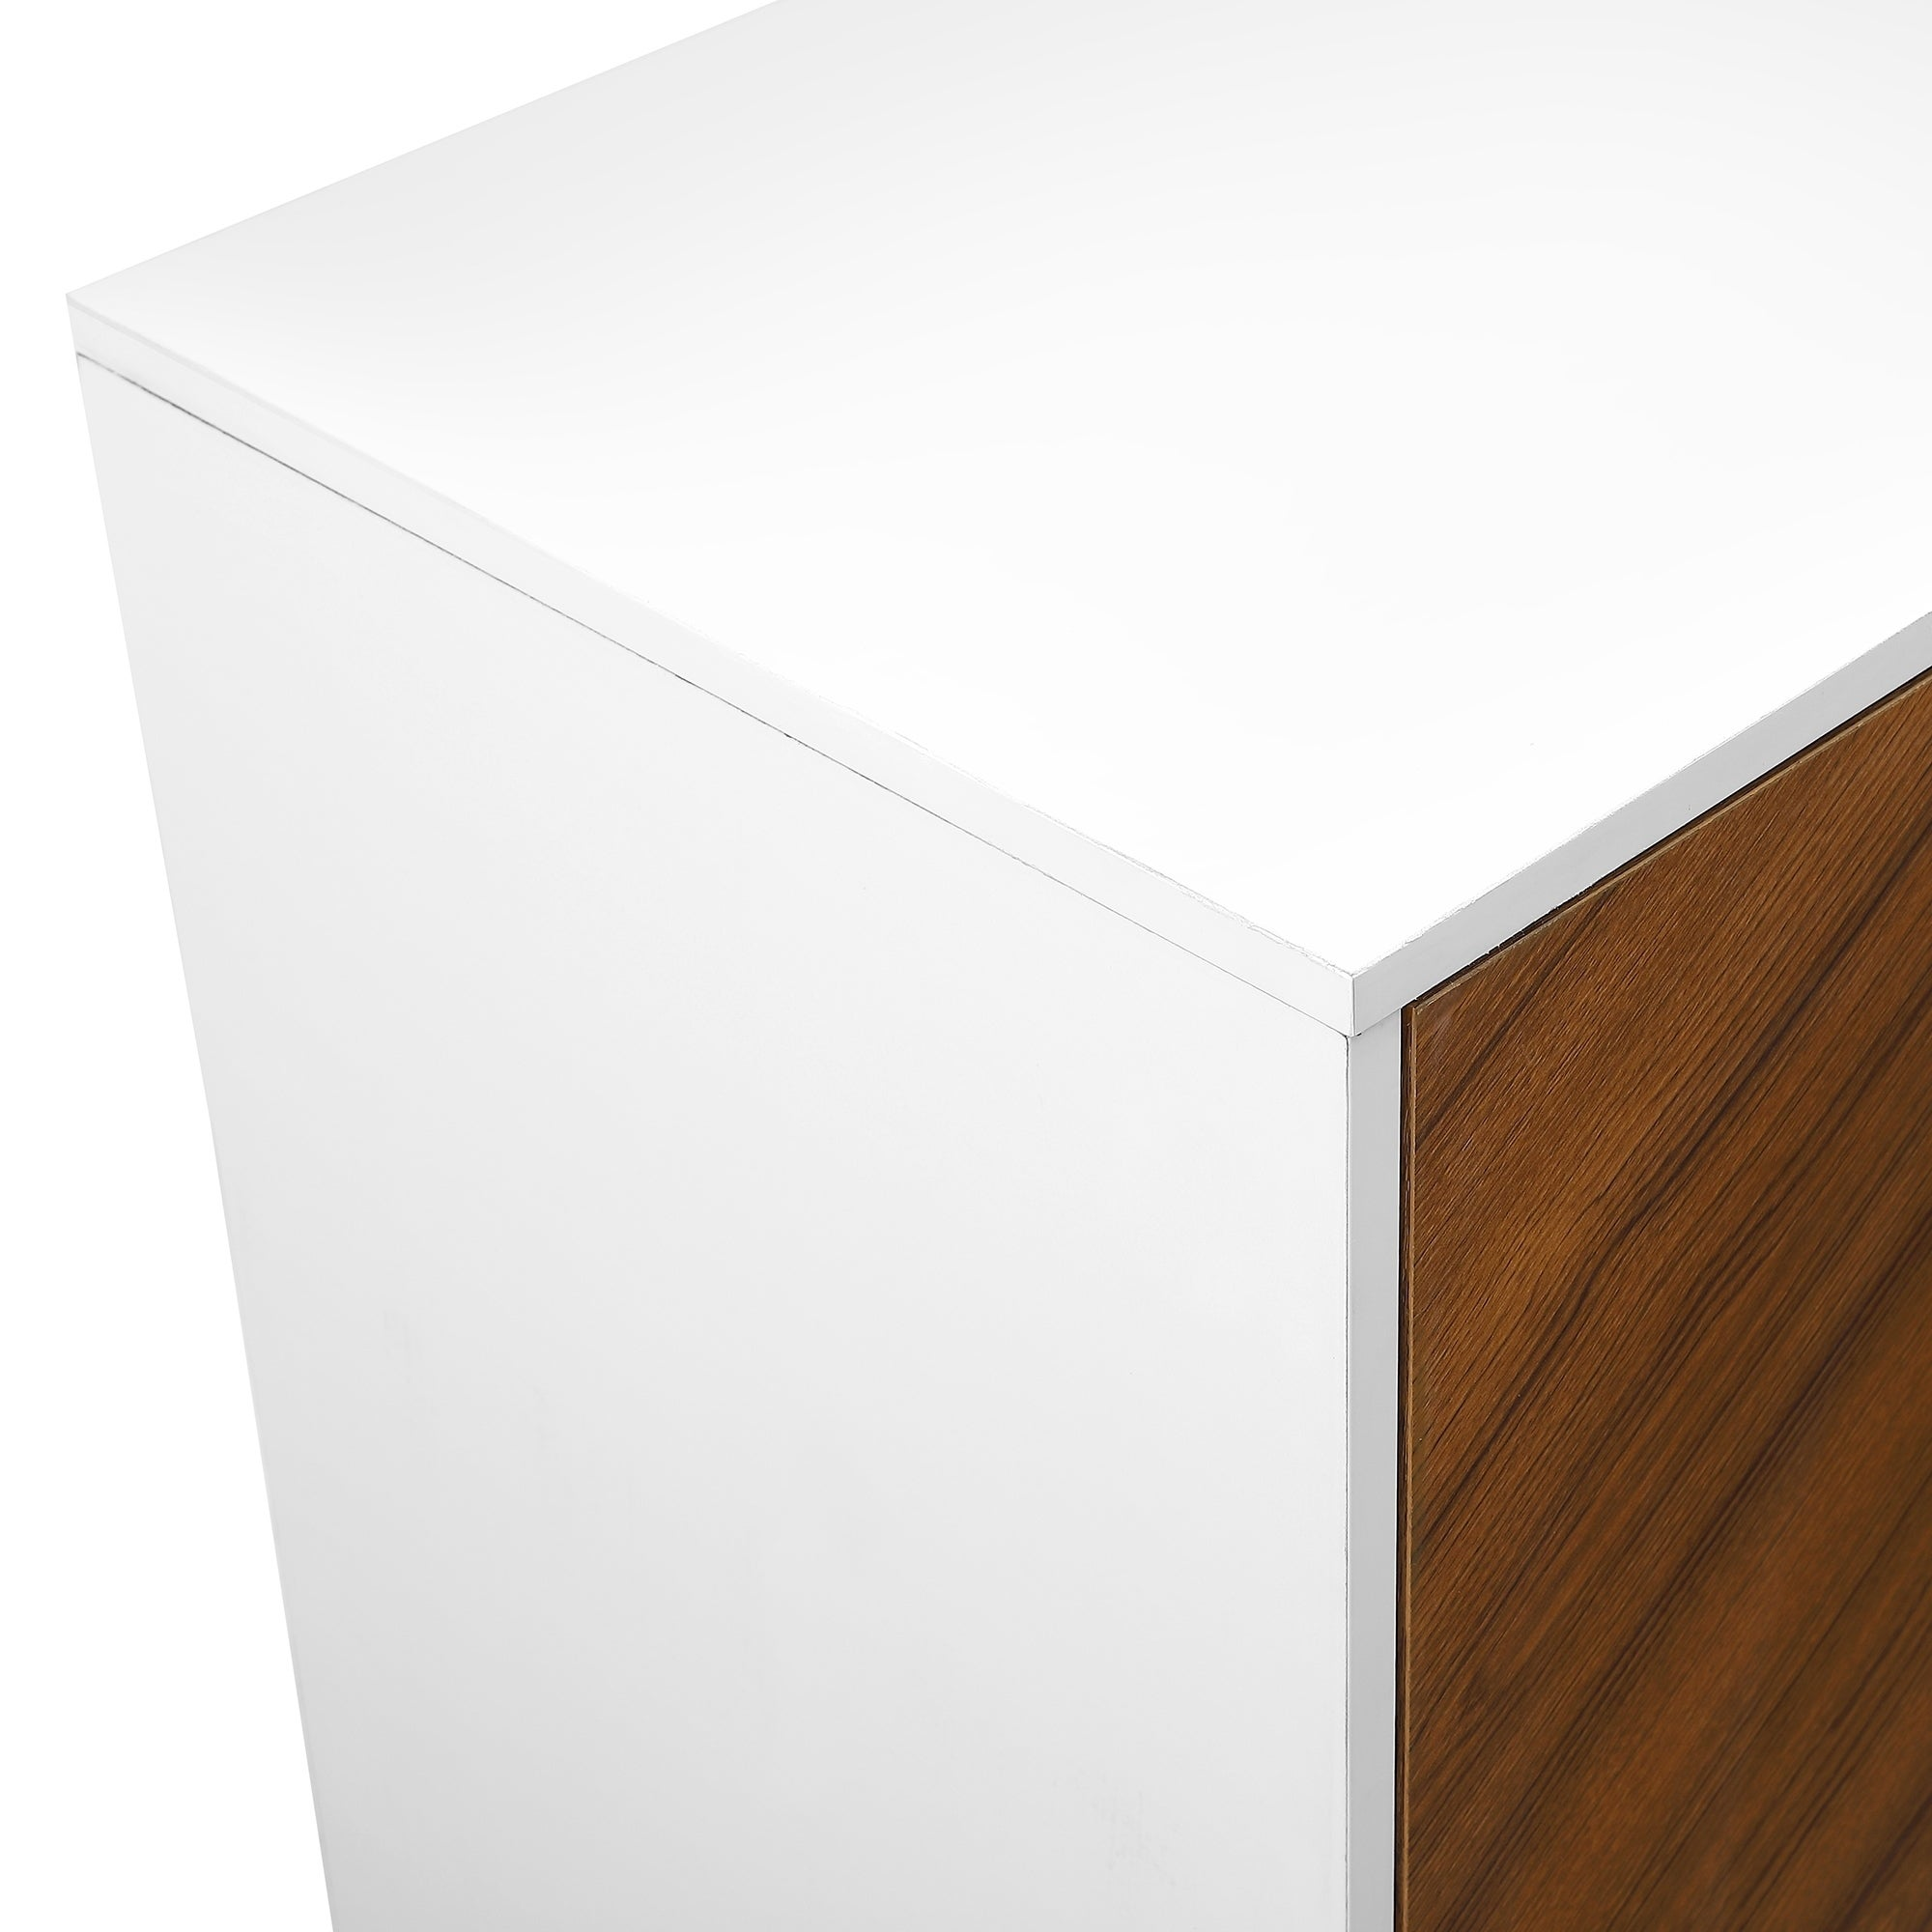 shop carson carrington trosa 58 bookmatch asymmetrical console 58 x 16 x 30h free shipping today overstock 22622813